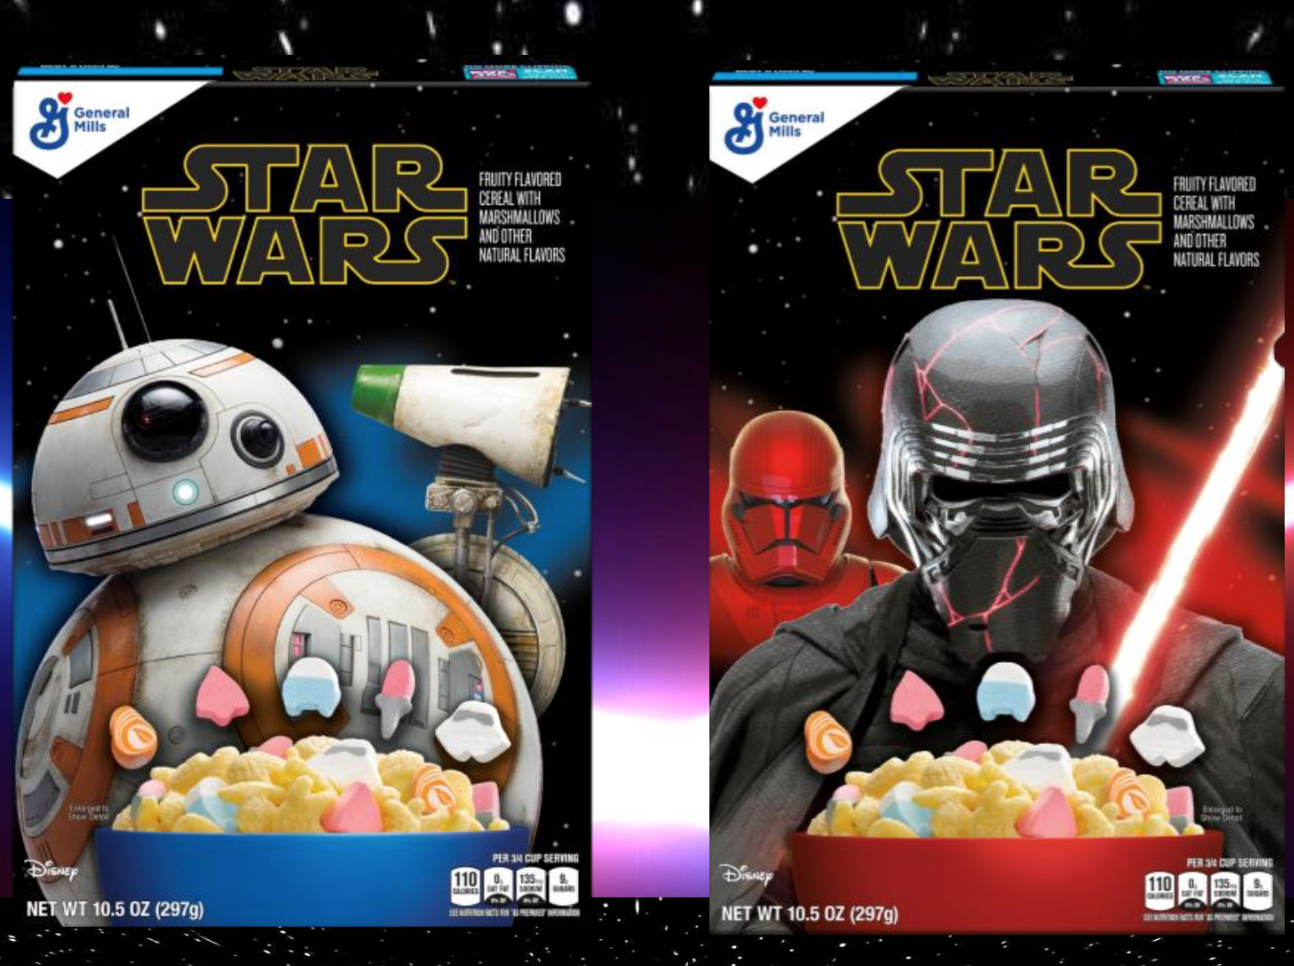 'Star Wars' Cereal Is Coming Back and It Looks Out of This World